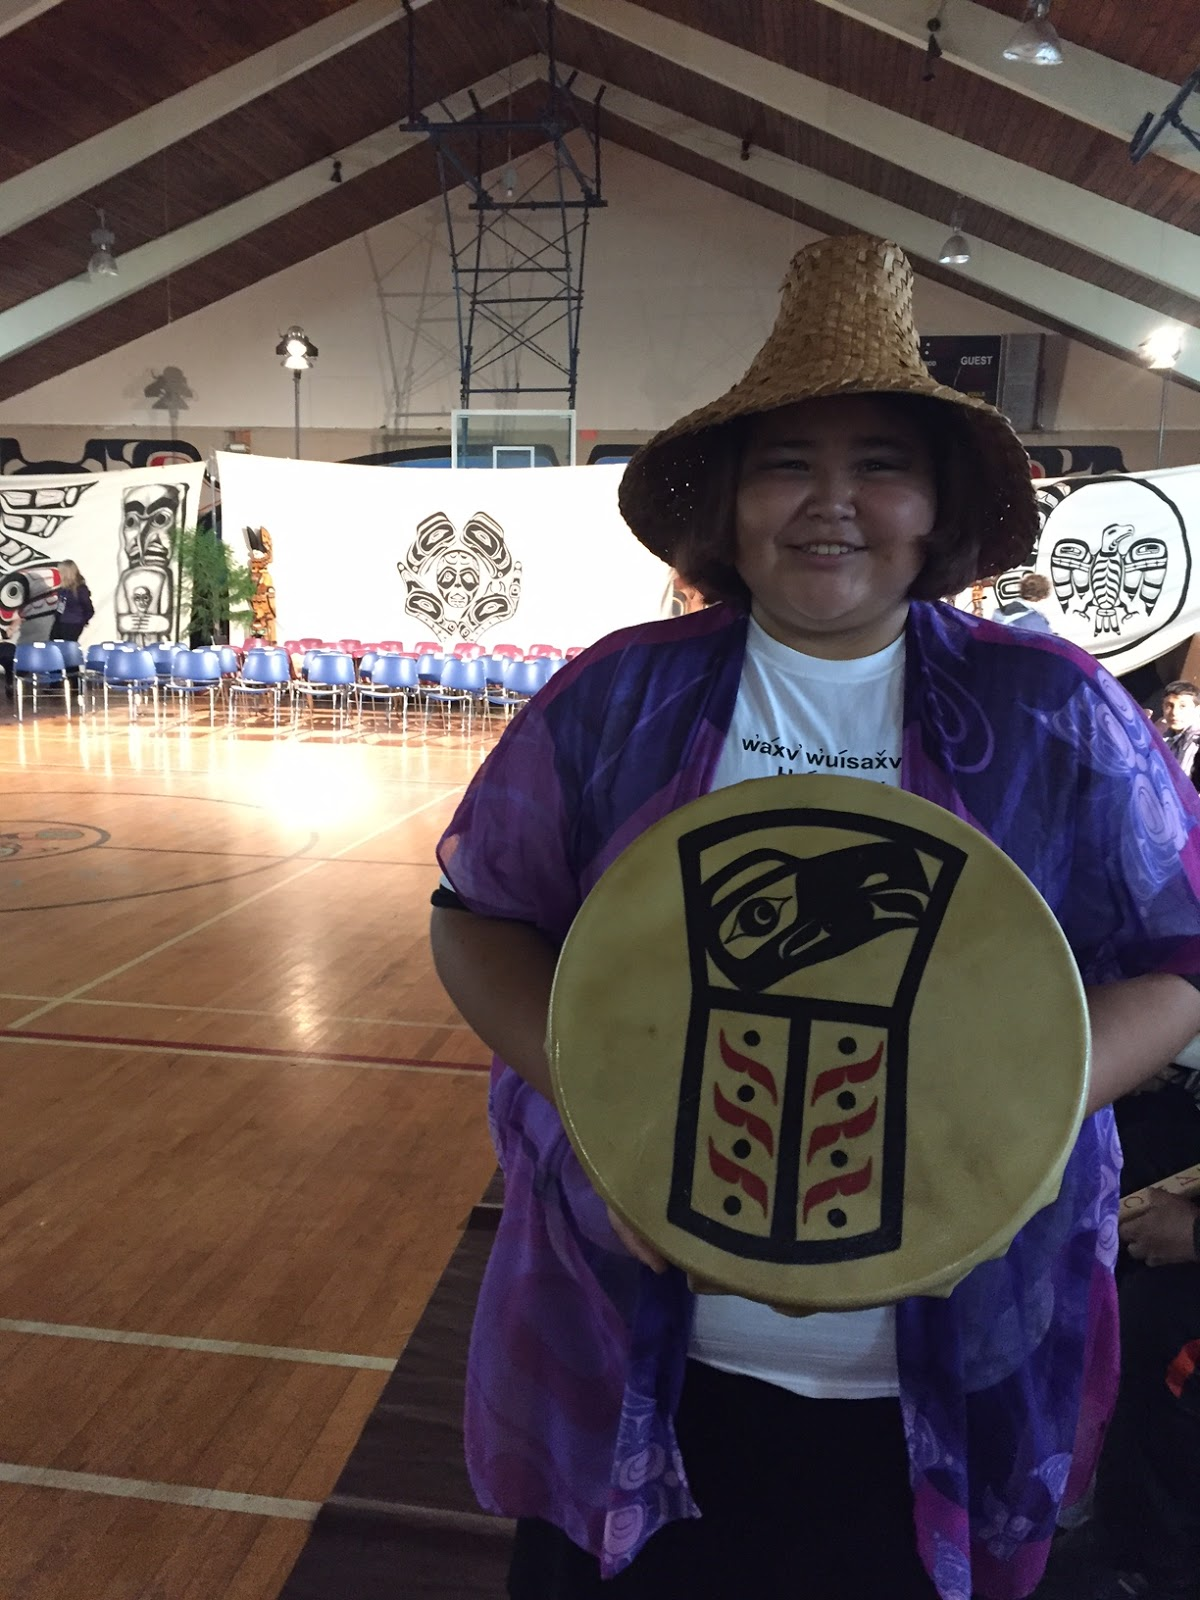 Our World filmmaker alumni, Natalia, holds a drum made by her Grandmother for this occasion!